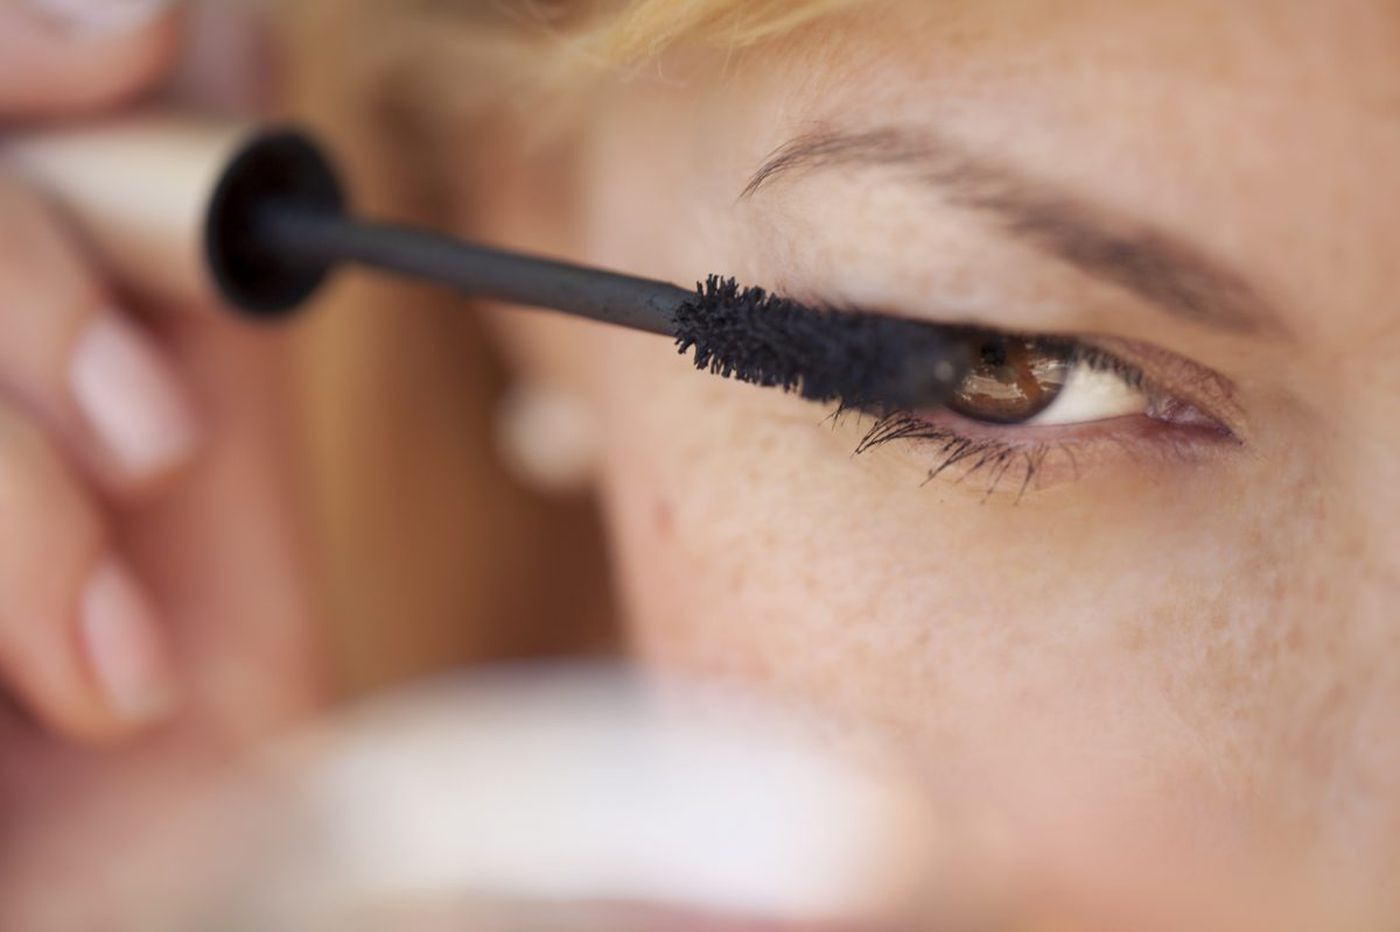 You've probably been applying your makeup in the wrong order